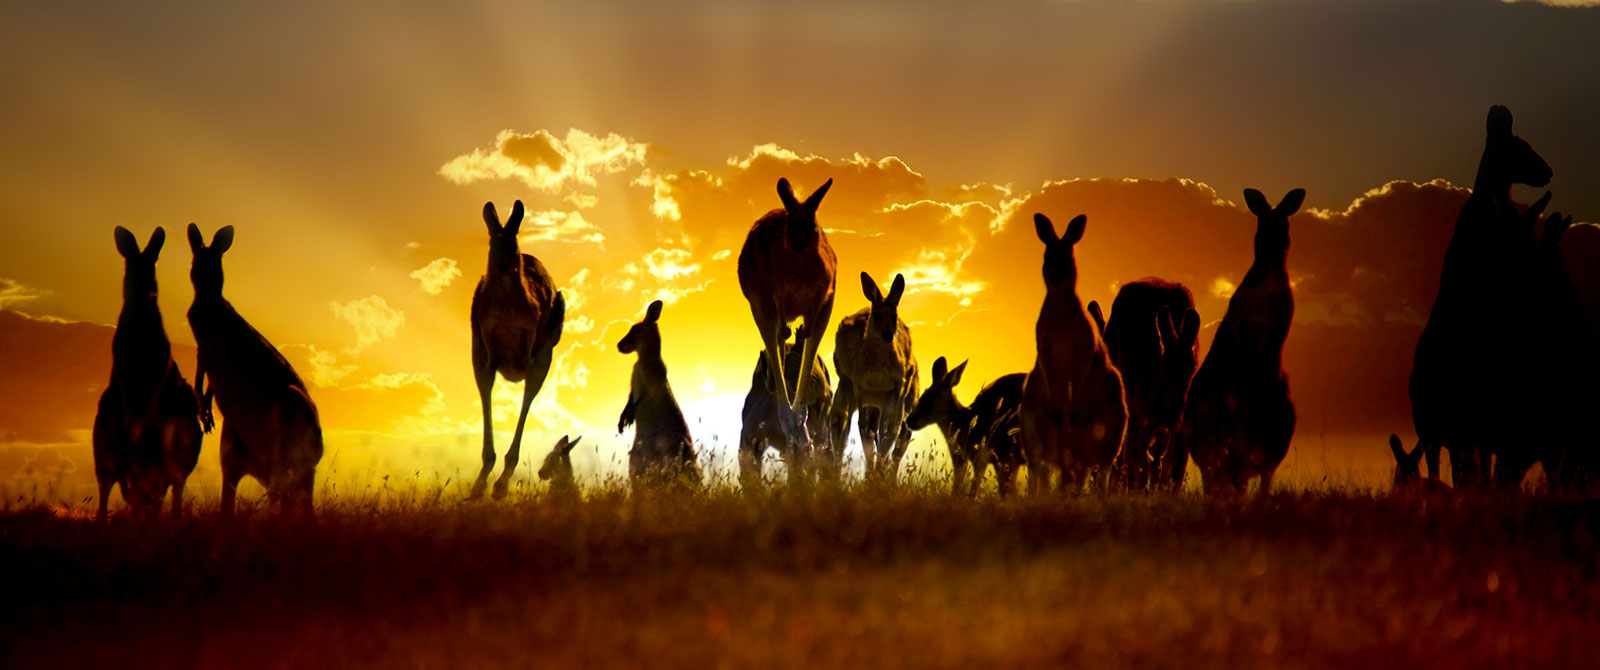 Kangaroos Hopping Through a Field at Sunset